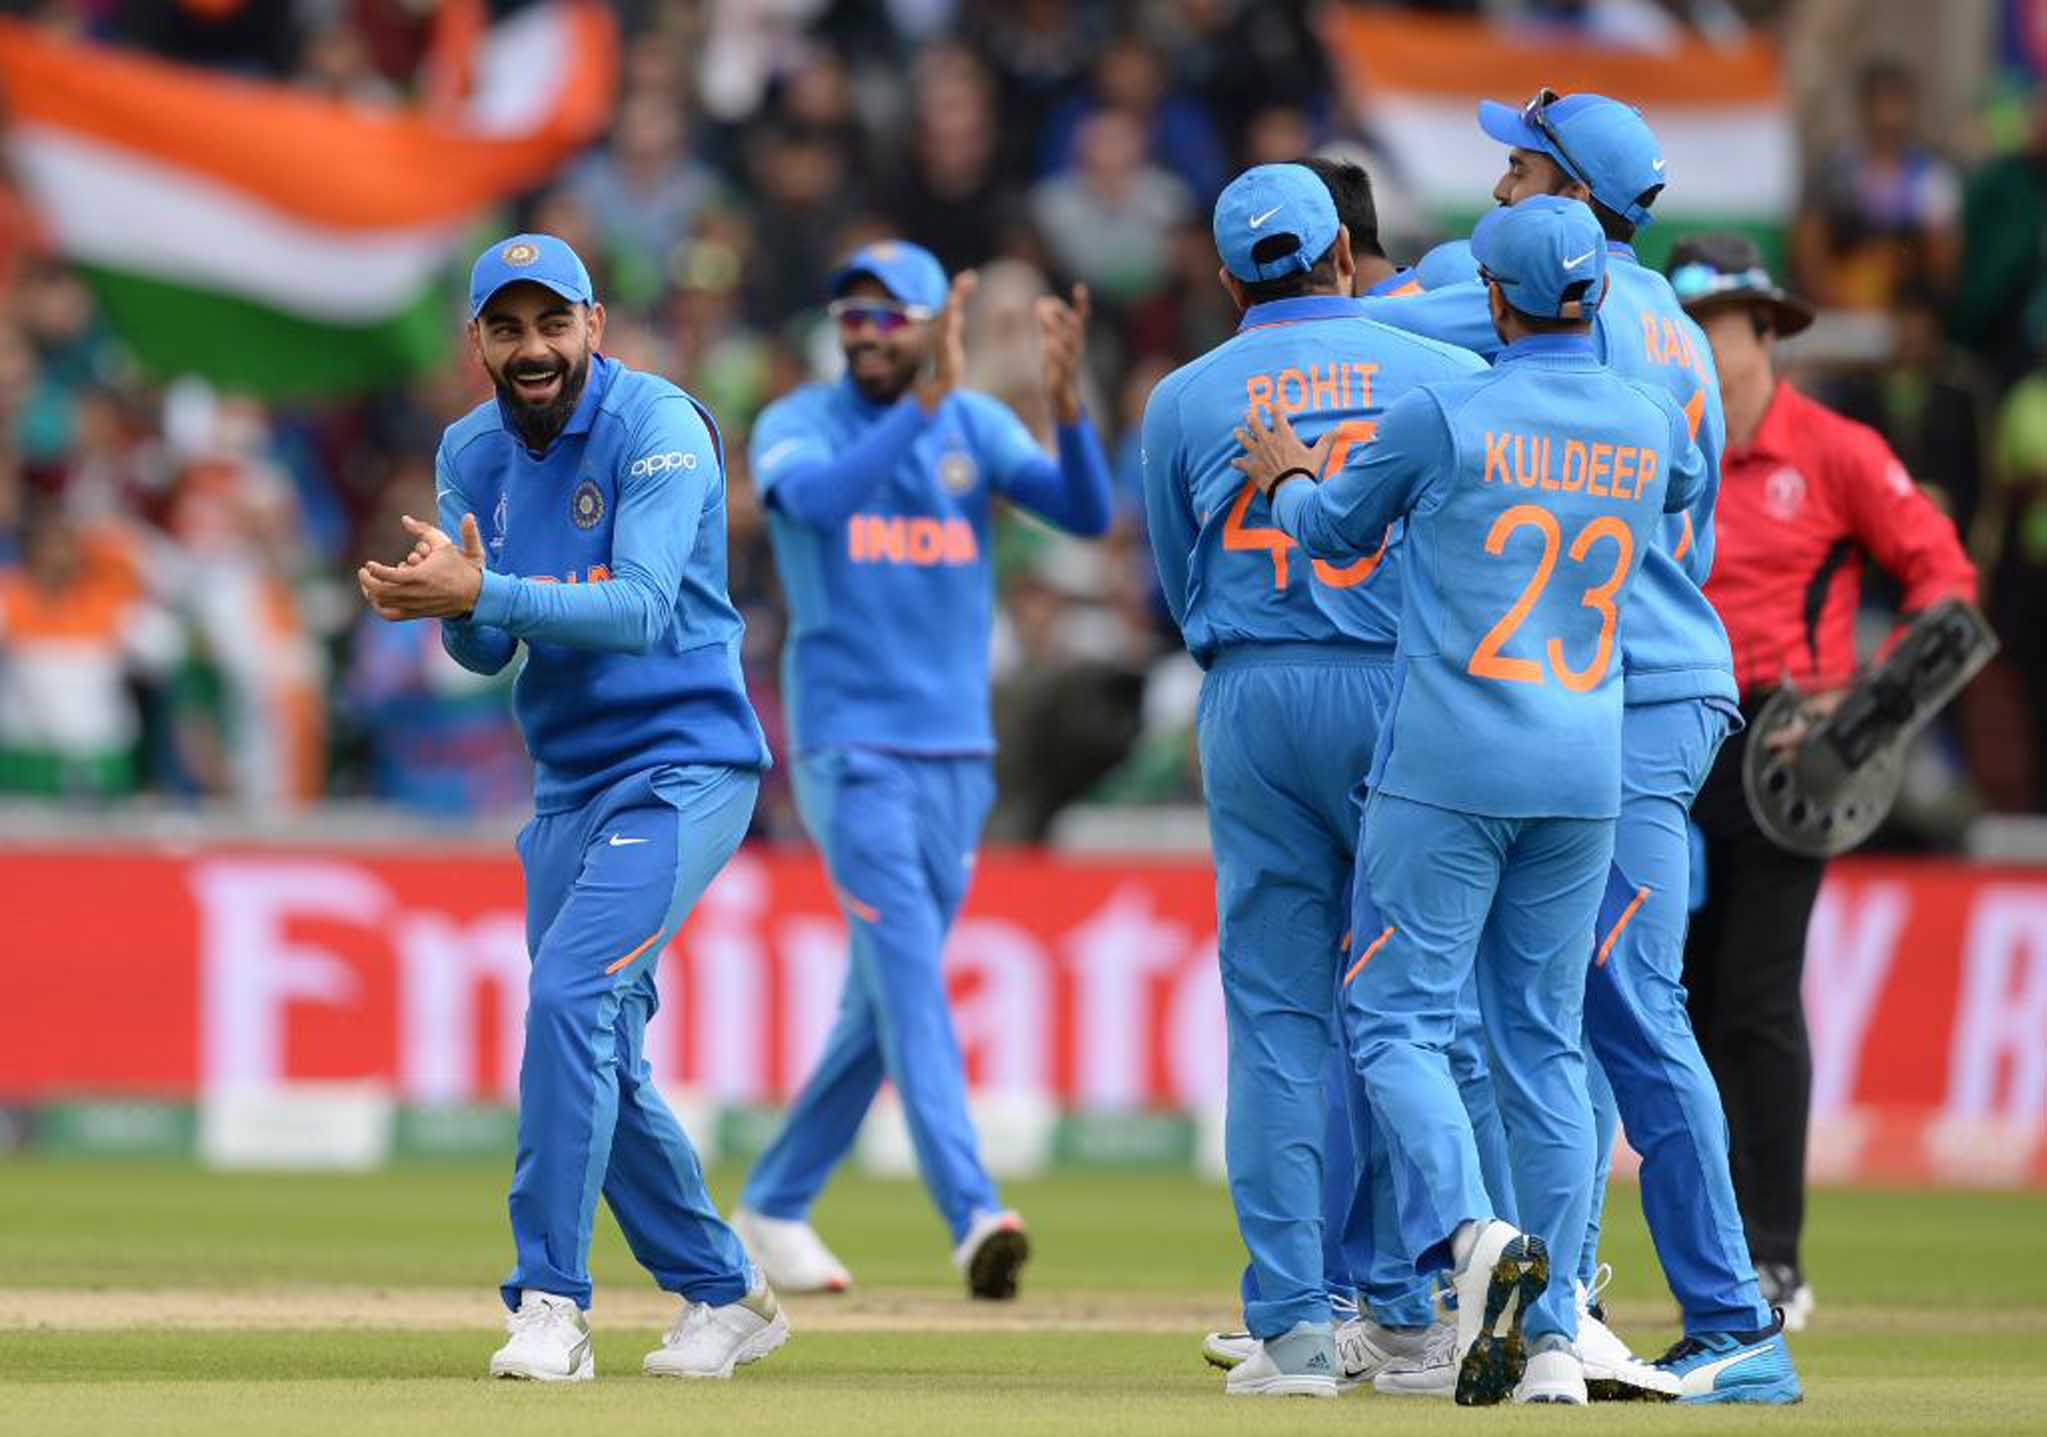 MANCHESTER, JUNE 16 (UNI):- Indian skipper Virat Kohli and teammates celebrates after win the match against Pakistan at World Cup 2019 at Old Trafford Cricket Ground, in Manchester on Sunday. UNI/ICC PHOTO-31C